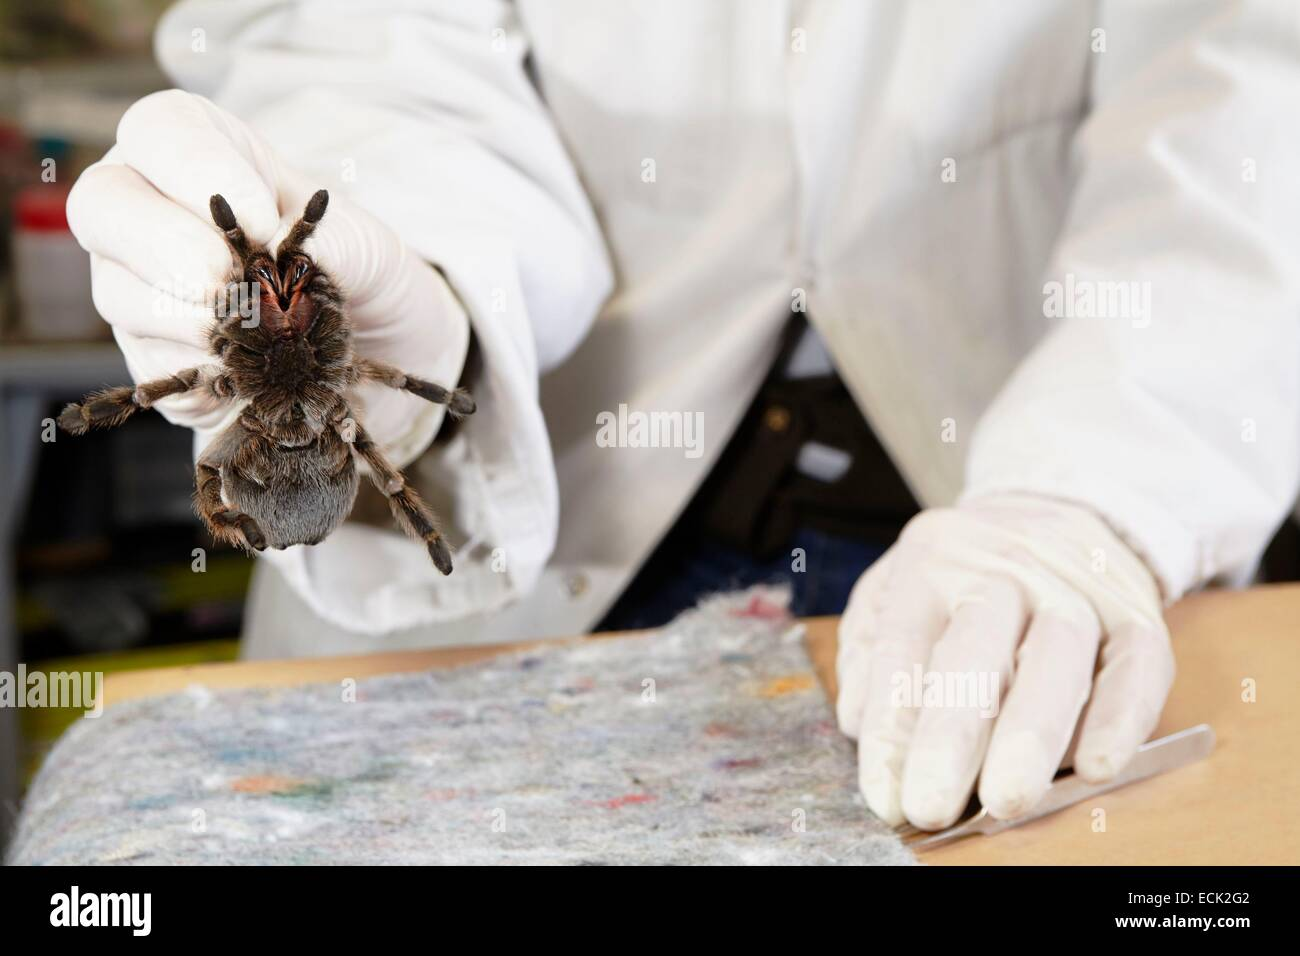 France, Paris, National Museum of Natural History, manipulation of tarantula Aphonopelma sp (Theraphosidae) - Stock Image